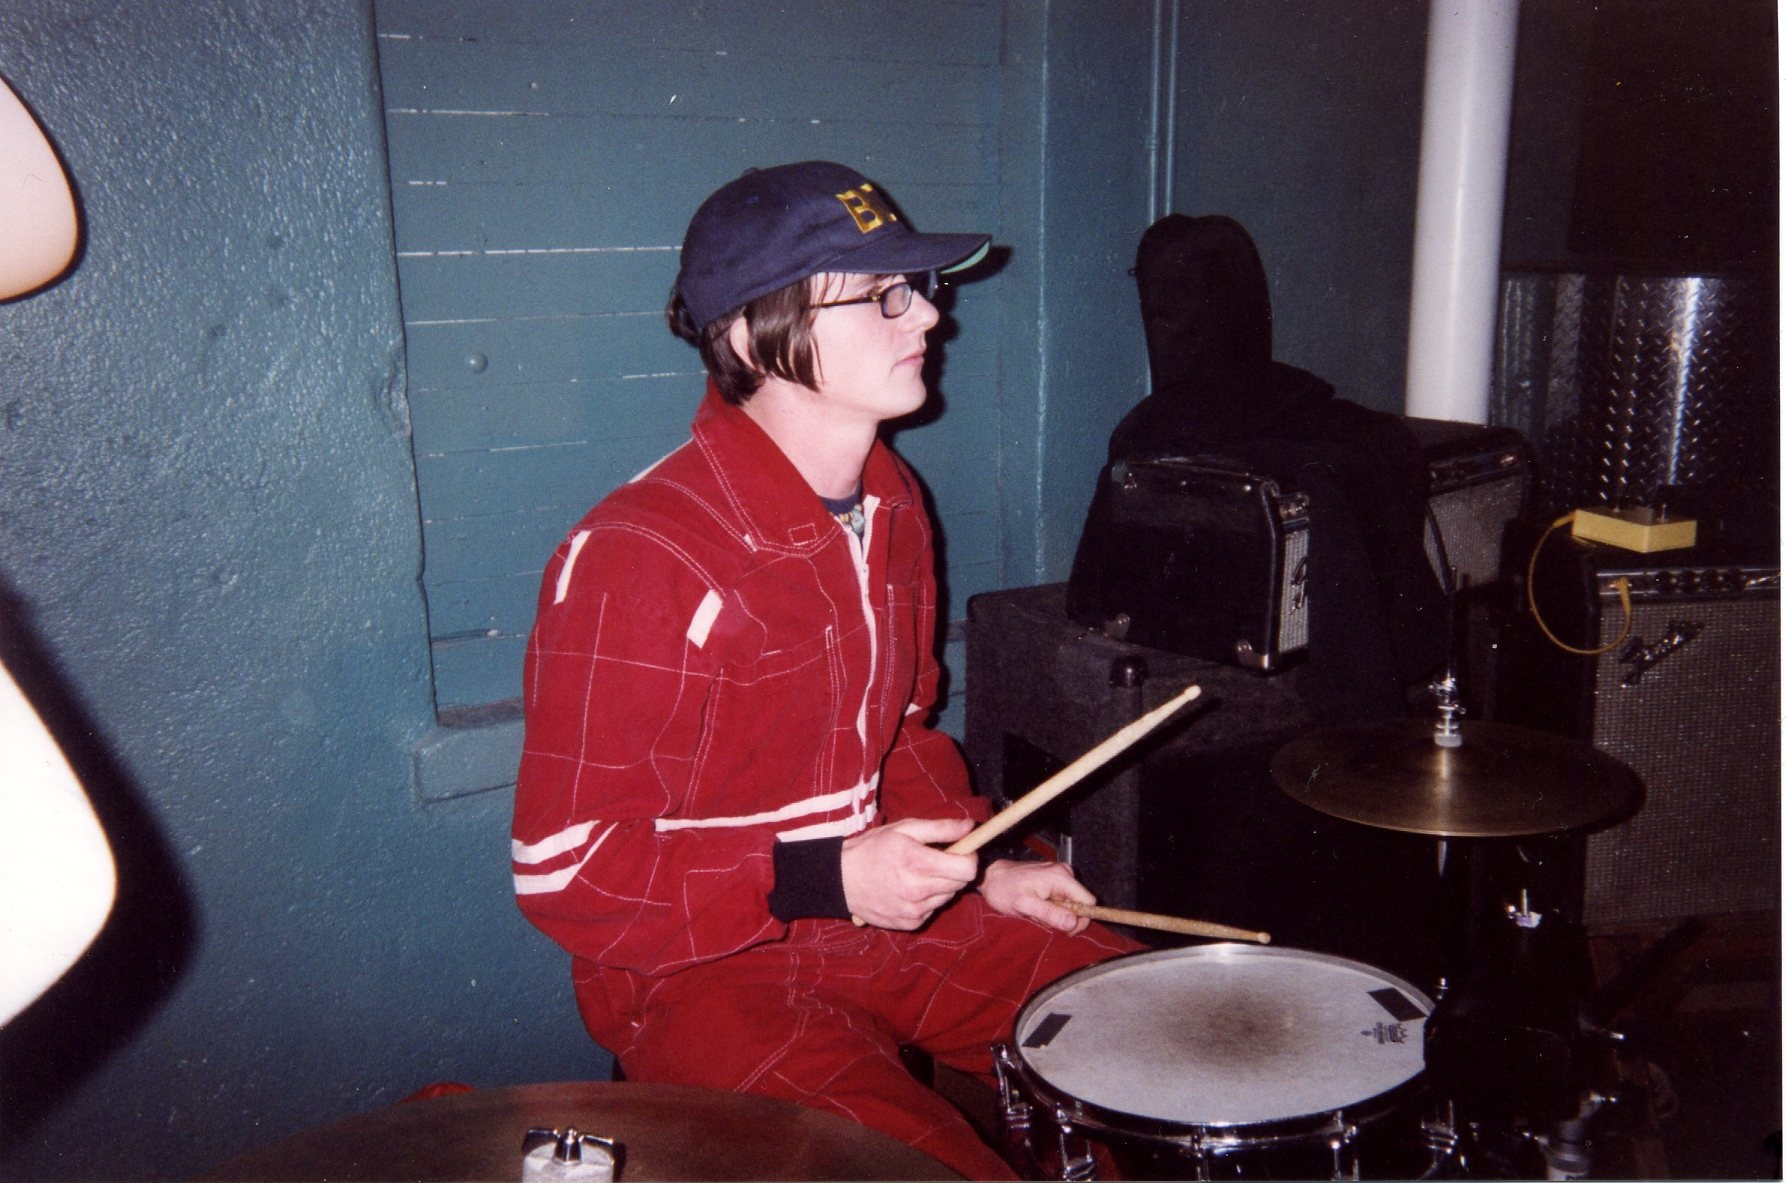 aaron at the drums